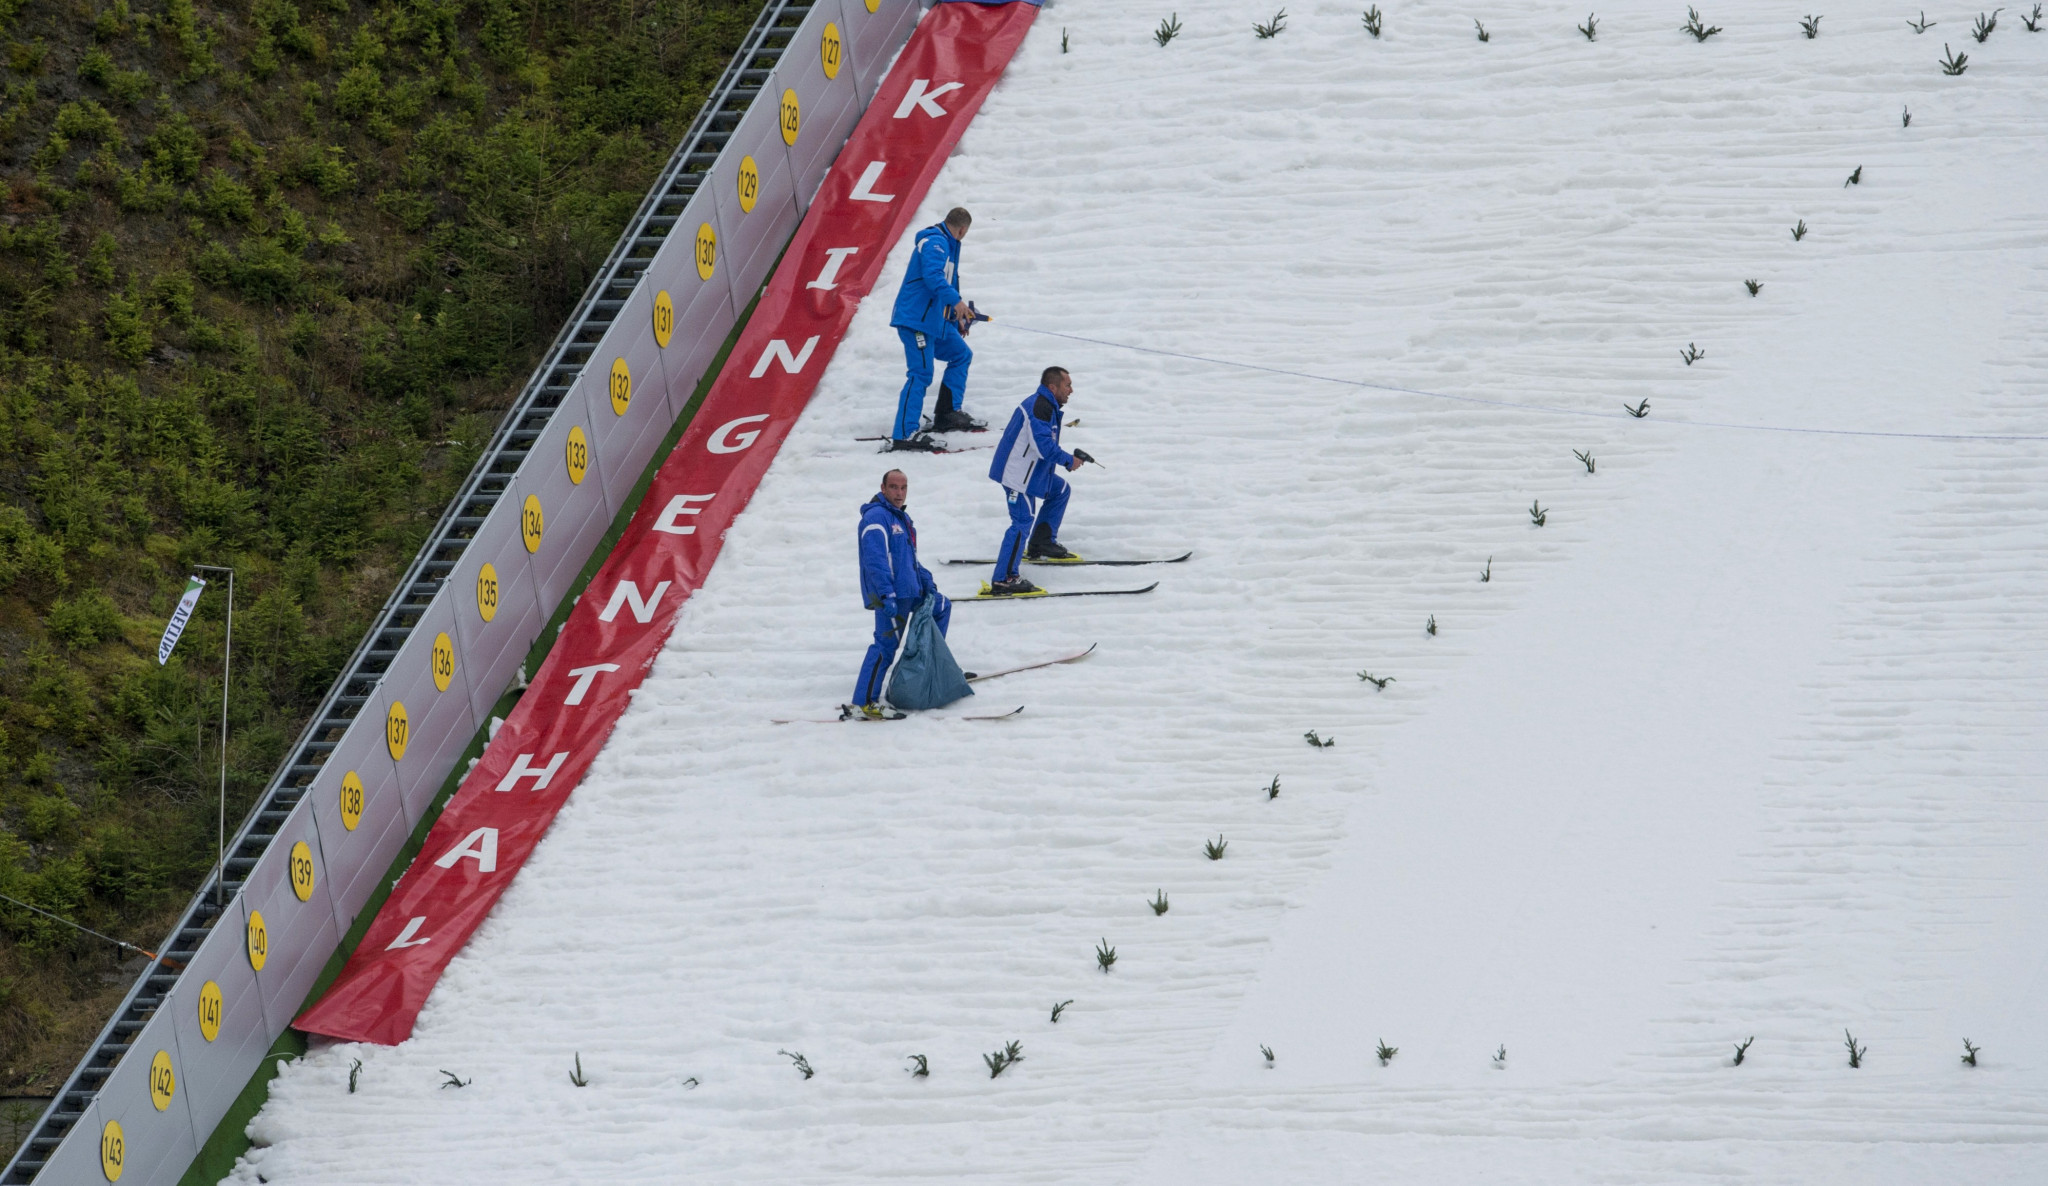 Provisional competition round at Nordic Combined World Cup cancelled